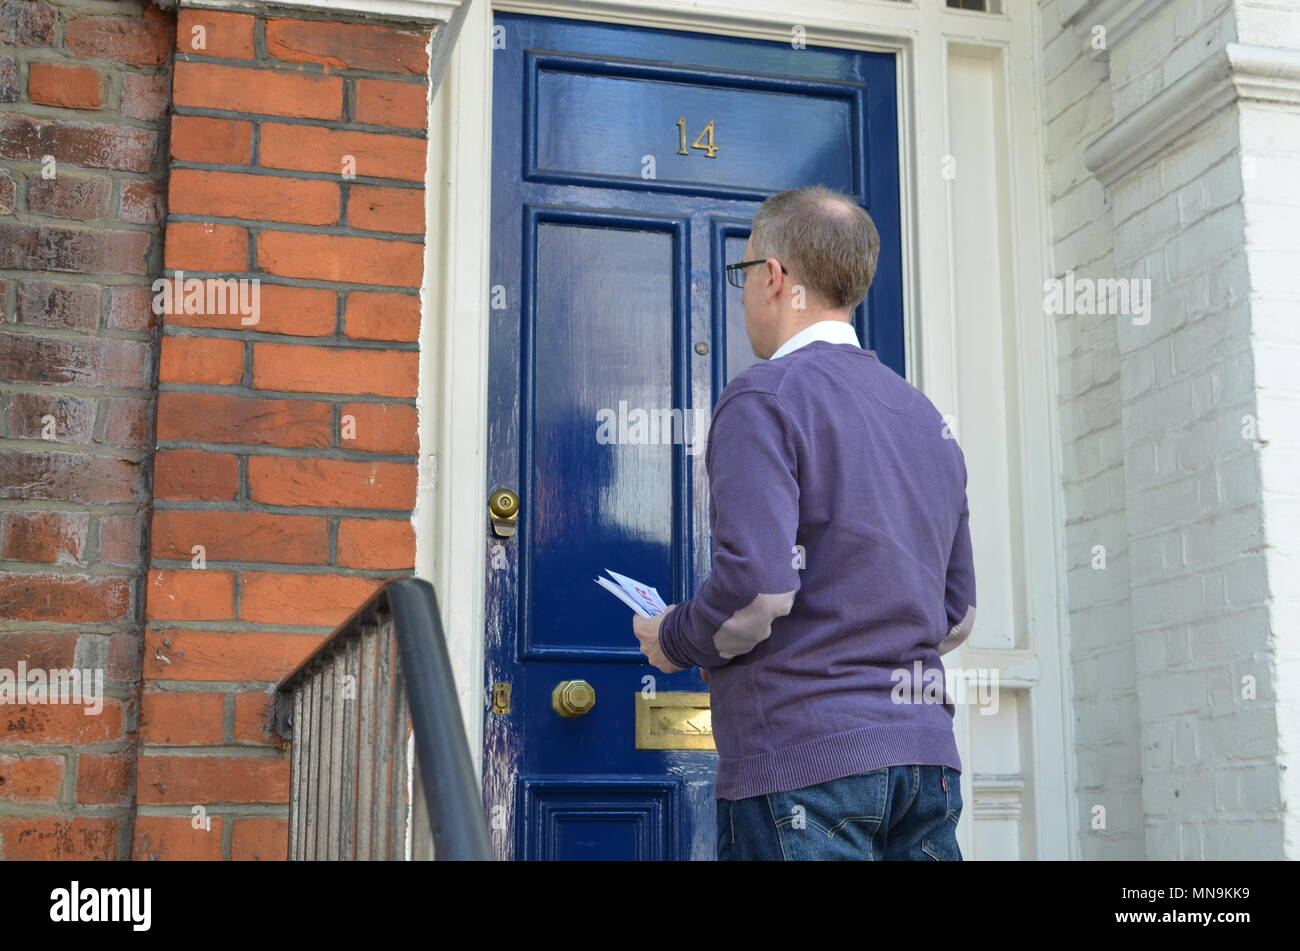 Male canvasser knocking on a blue door and standing outside & Male canvasser knocking on a blue door and standing outside Stock ...